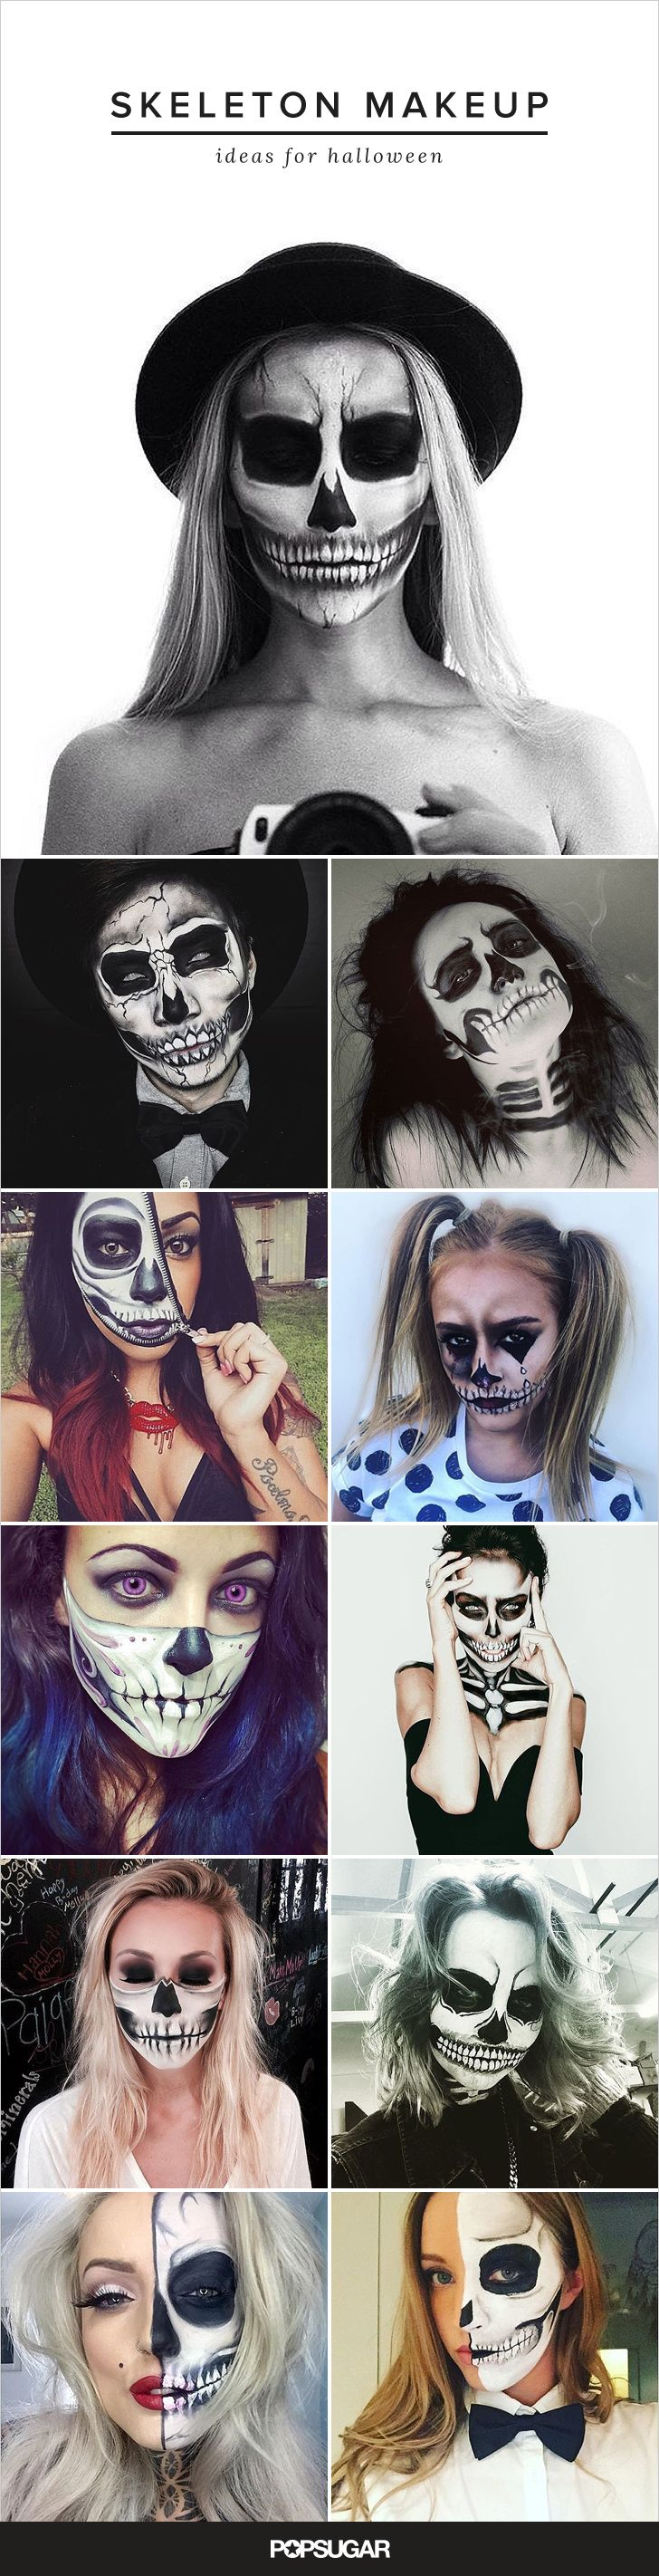 terrifyingly cool skeleton makeup ideas to try for halloween